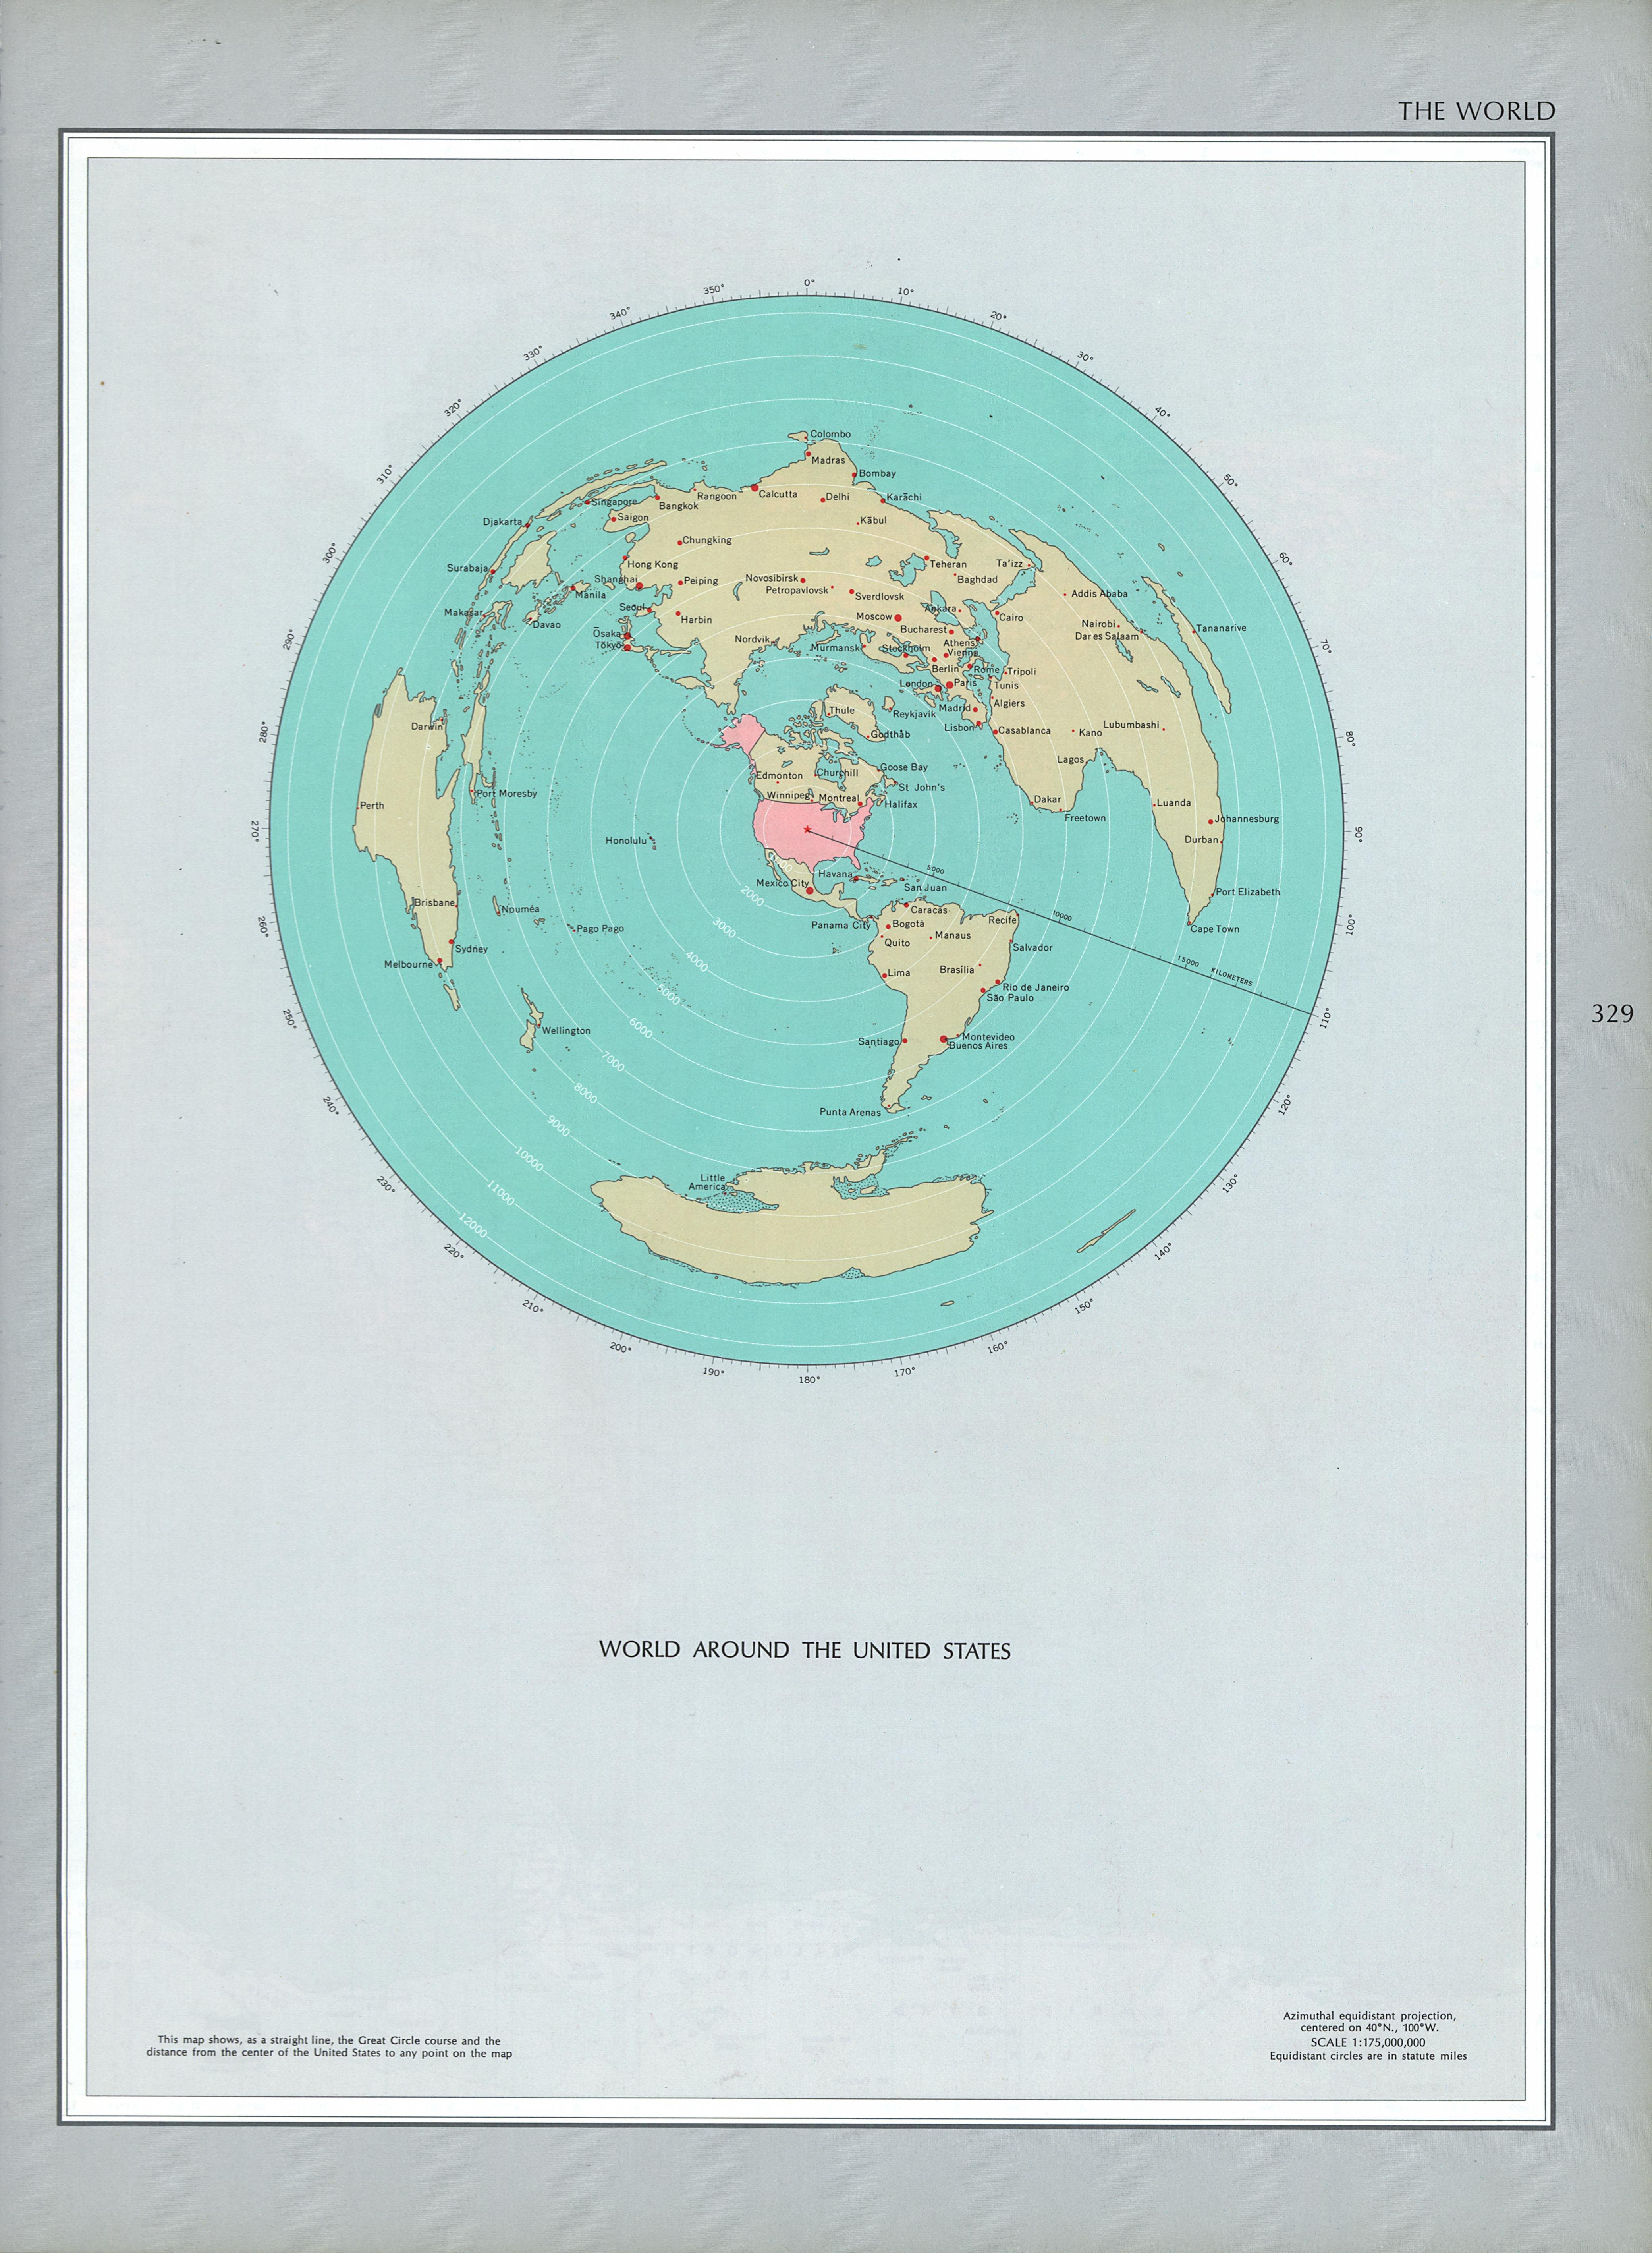 Map of the World Around the United States